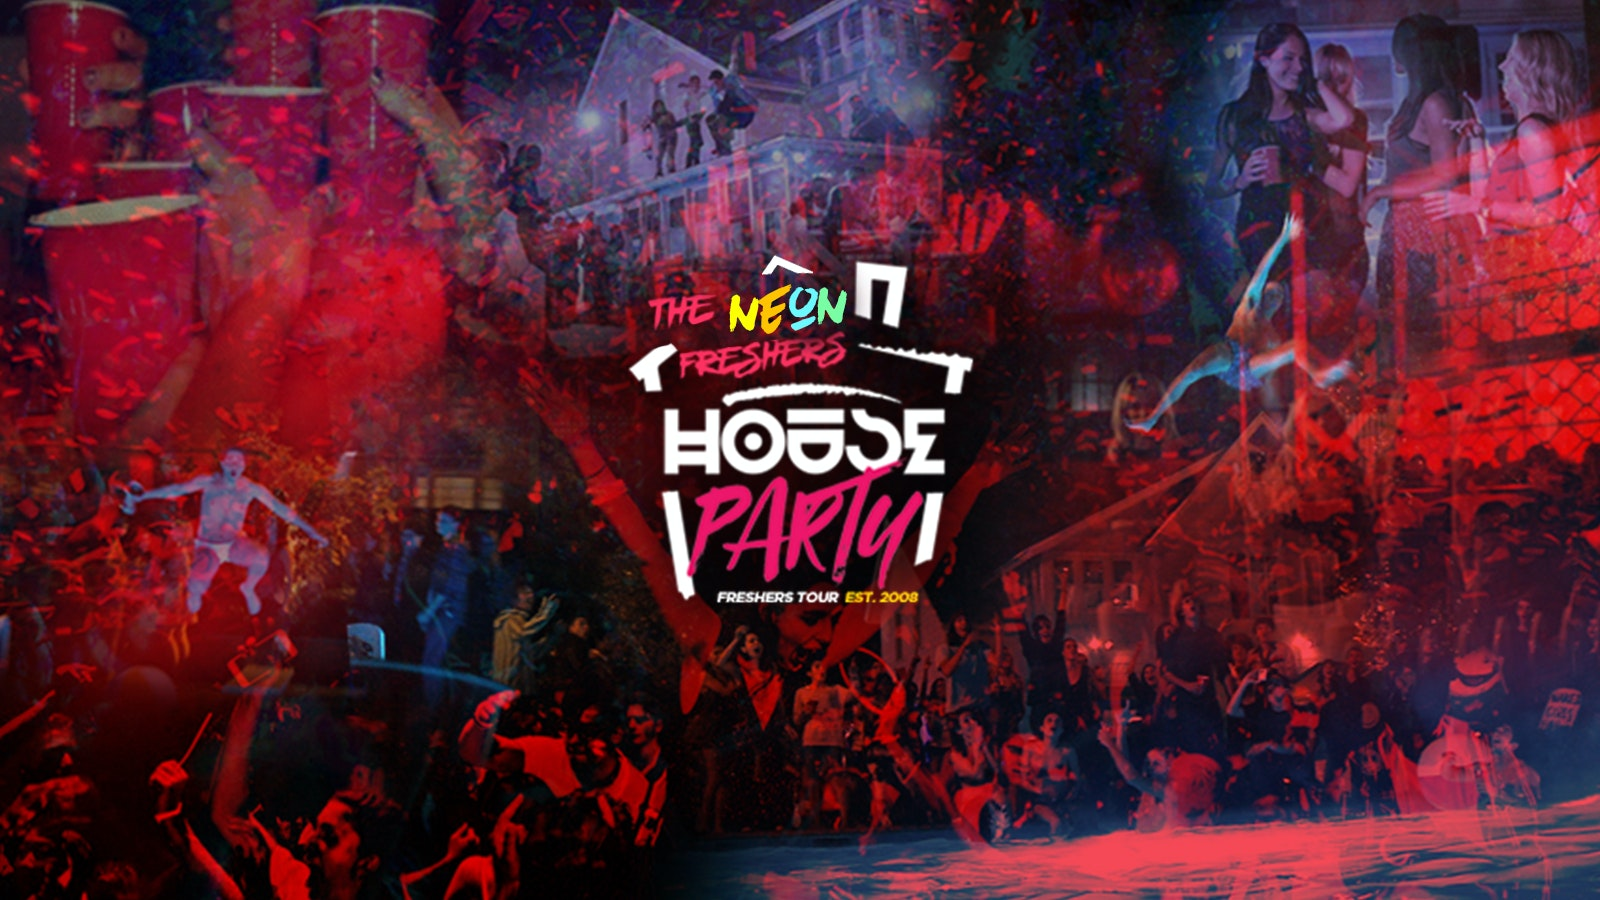 Neon Freshers House Party // Bath Freshers 2020